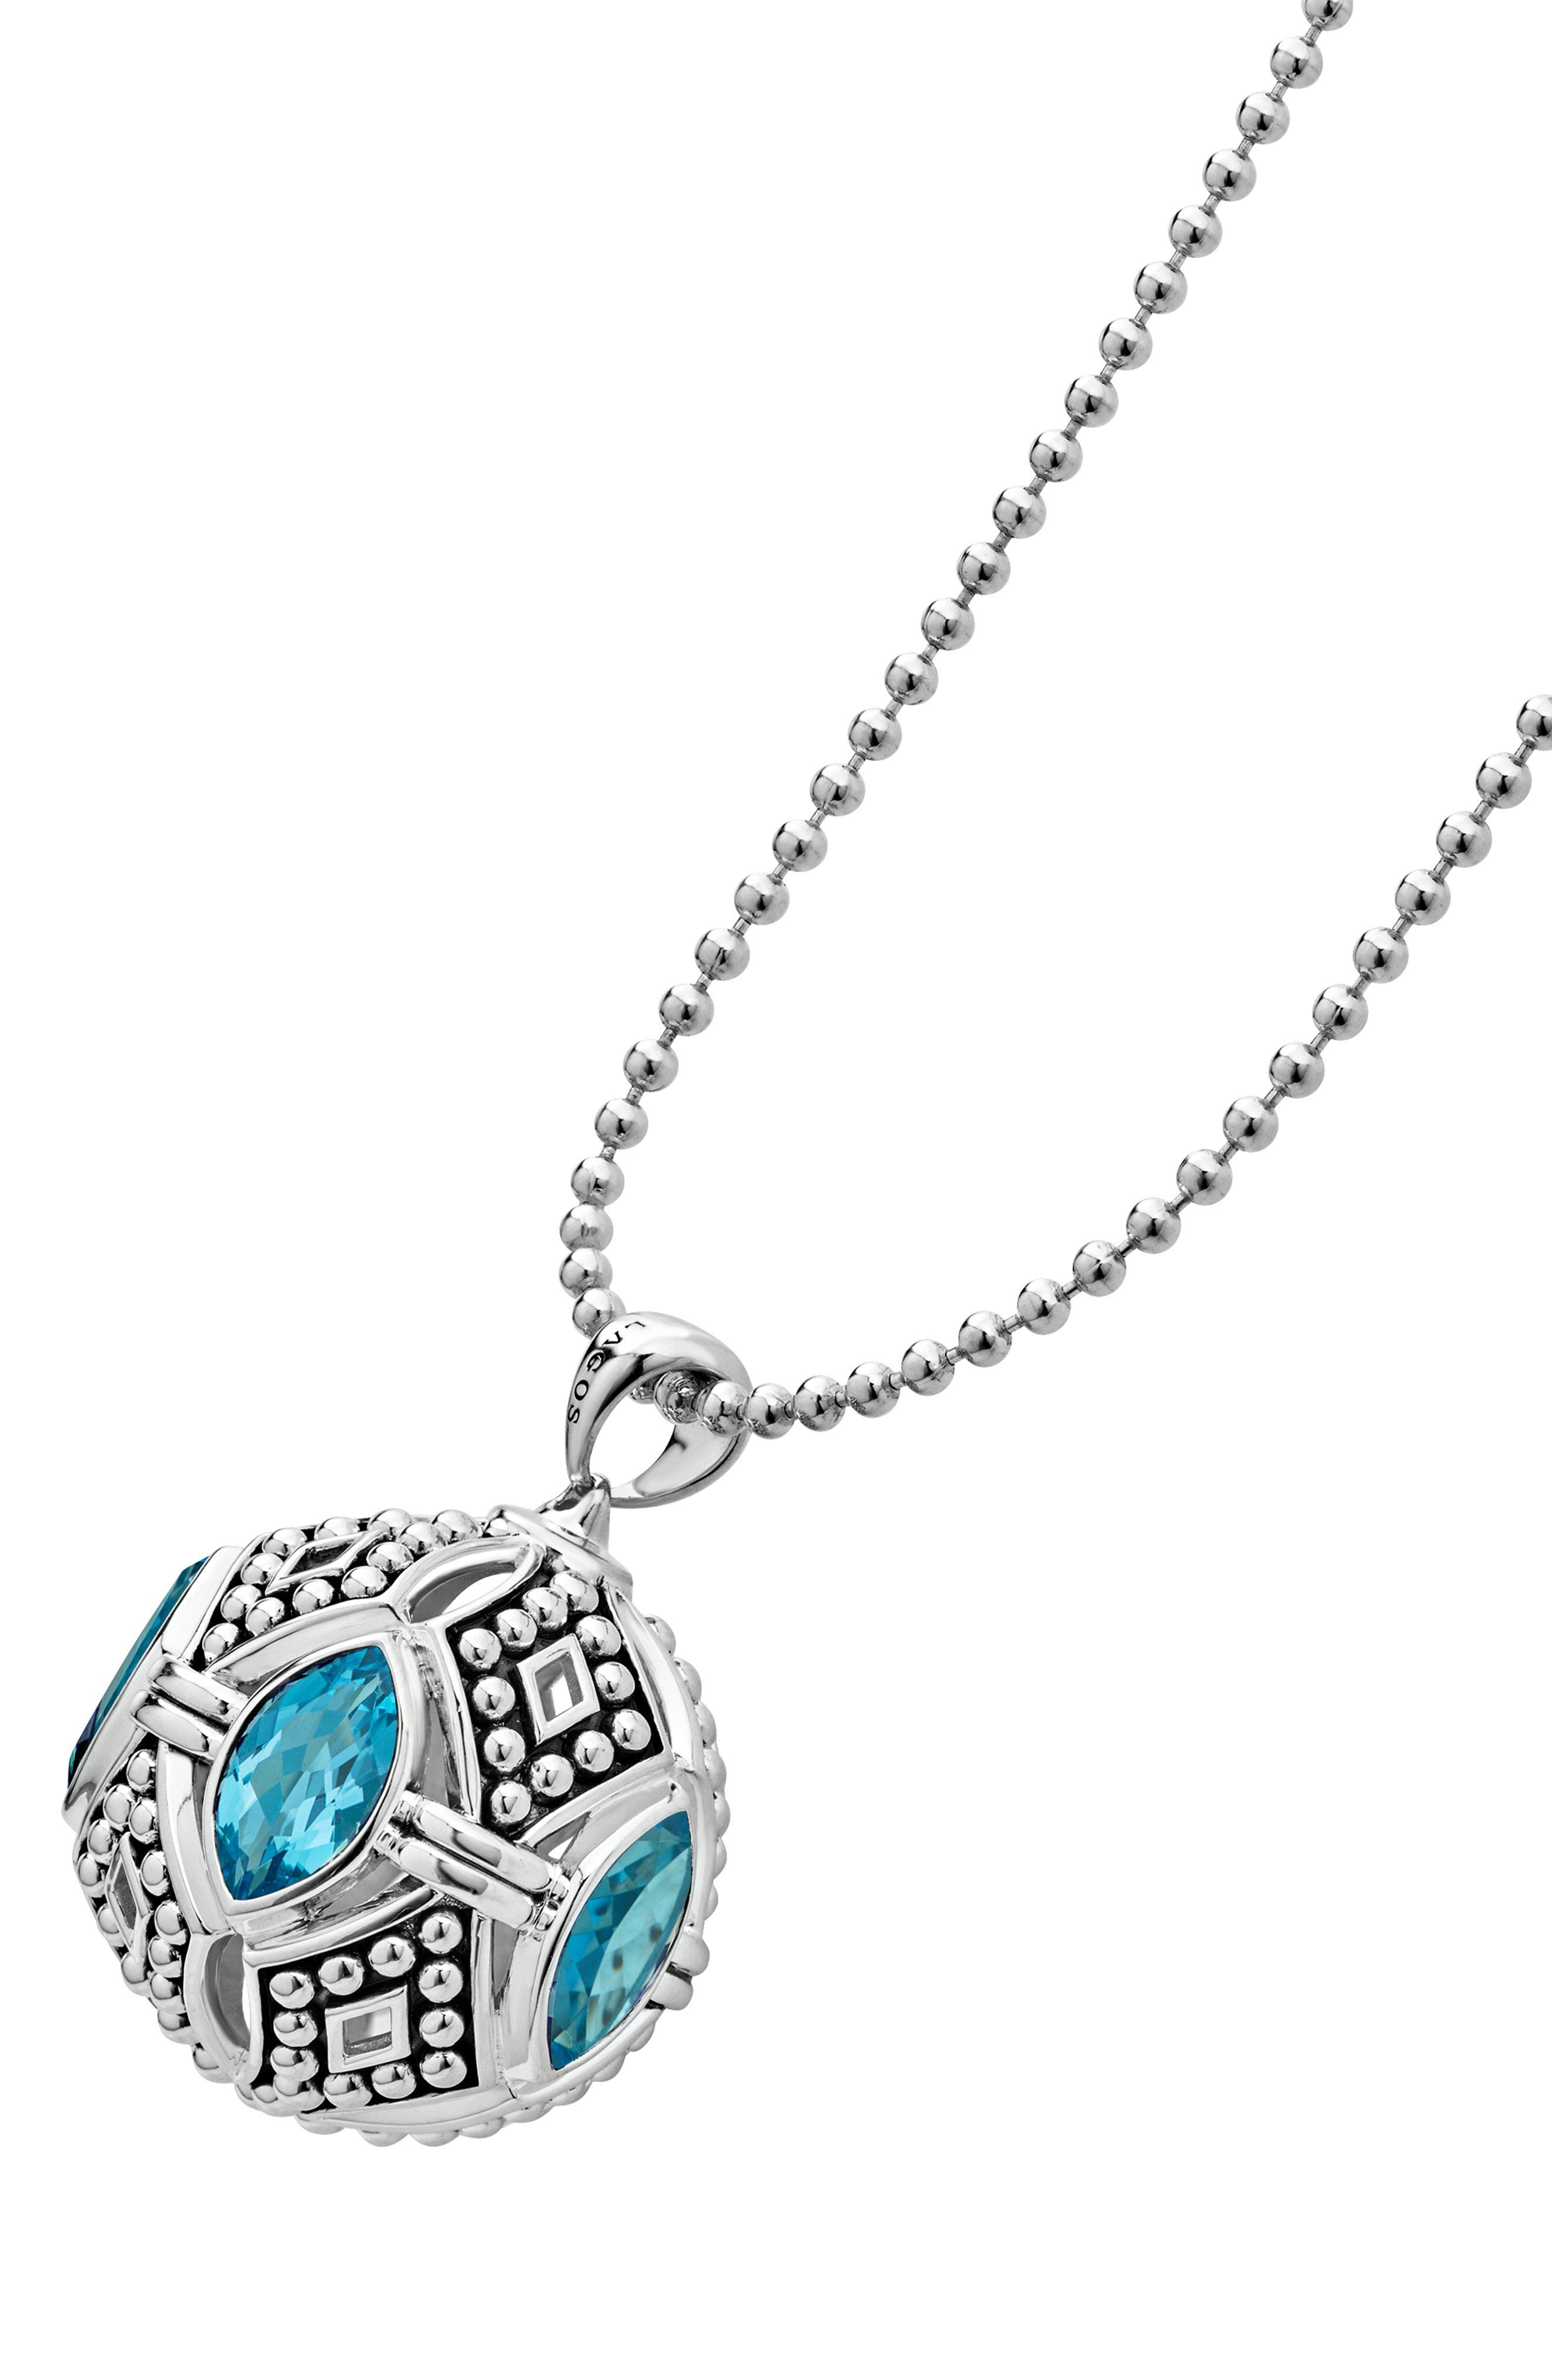 Signature Gifts Marquee Ball Pendant Necklace,                             Alternate thumbnail 2, color,                             SILVER/ BLUE TOPAZ